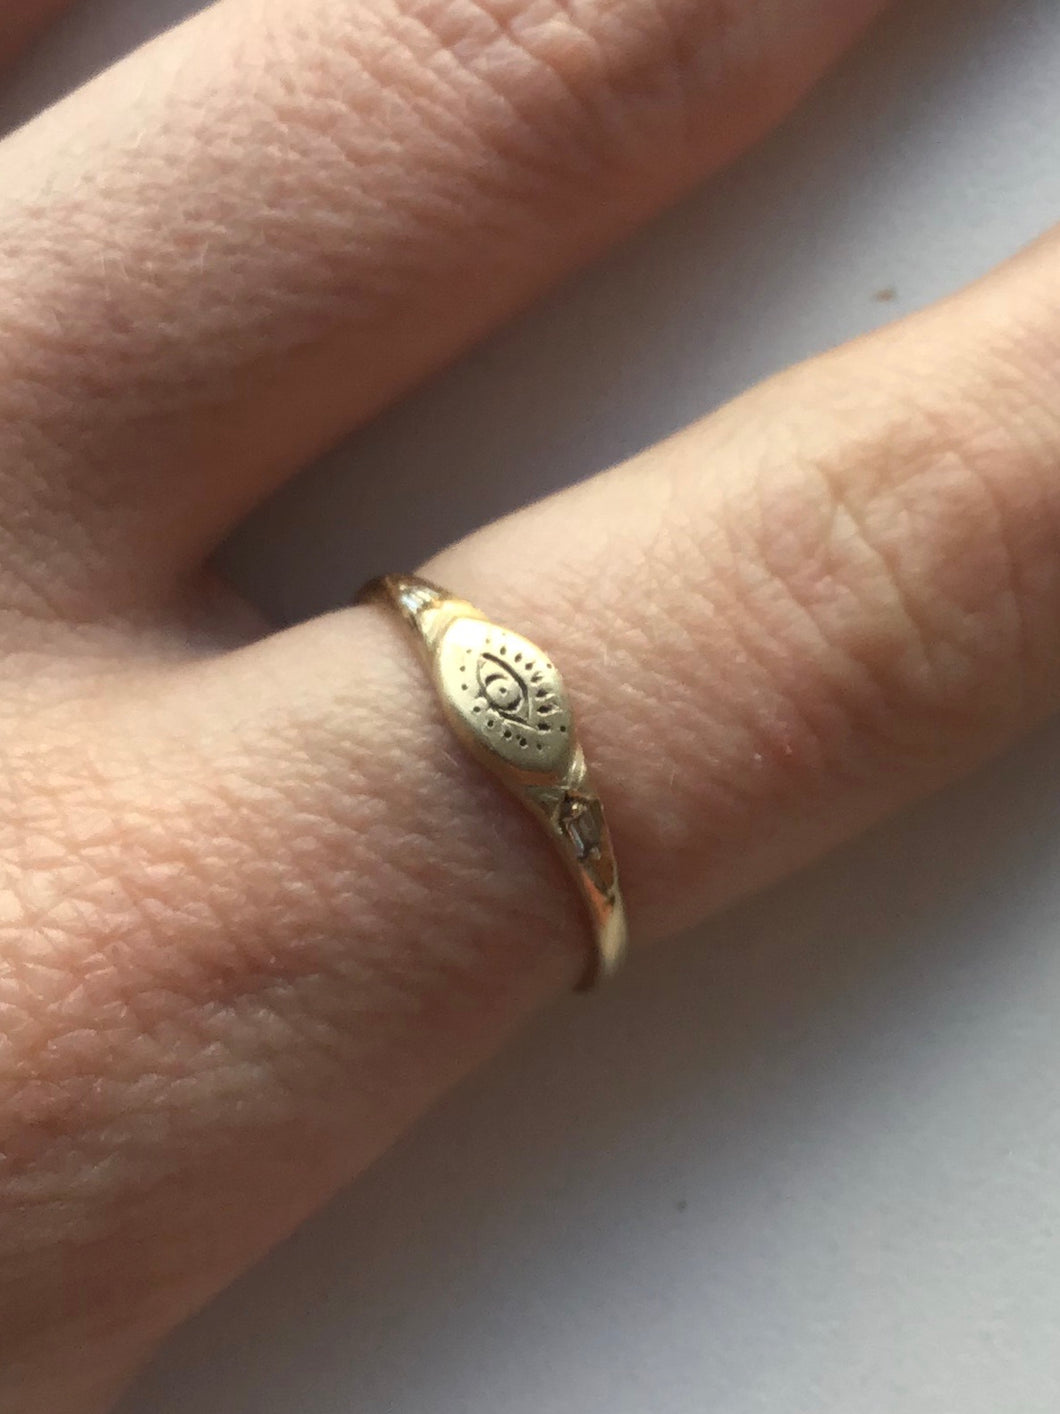 Littlest Eye Ring in 14K Gold by Daisy San Luis